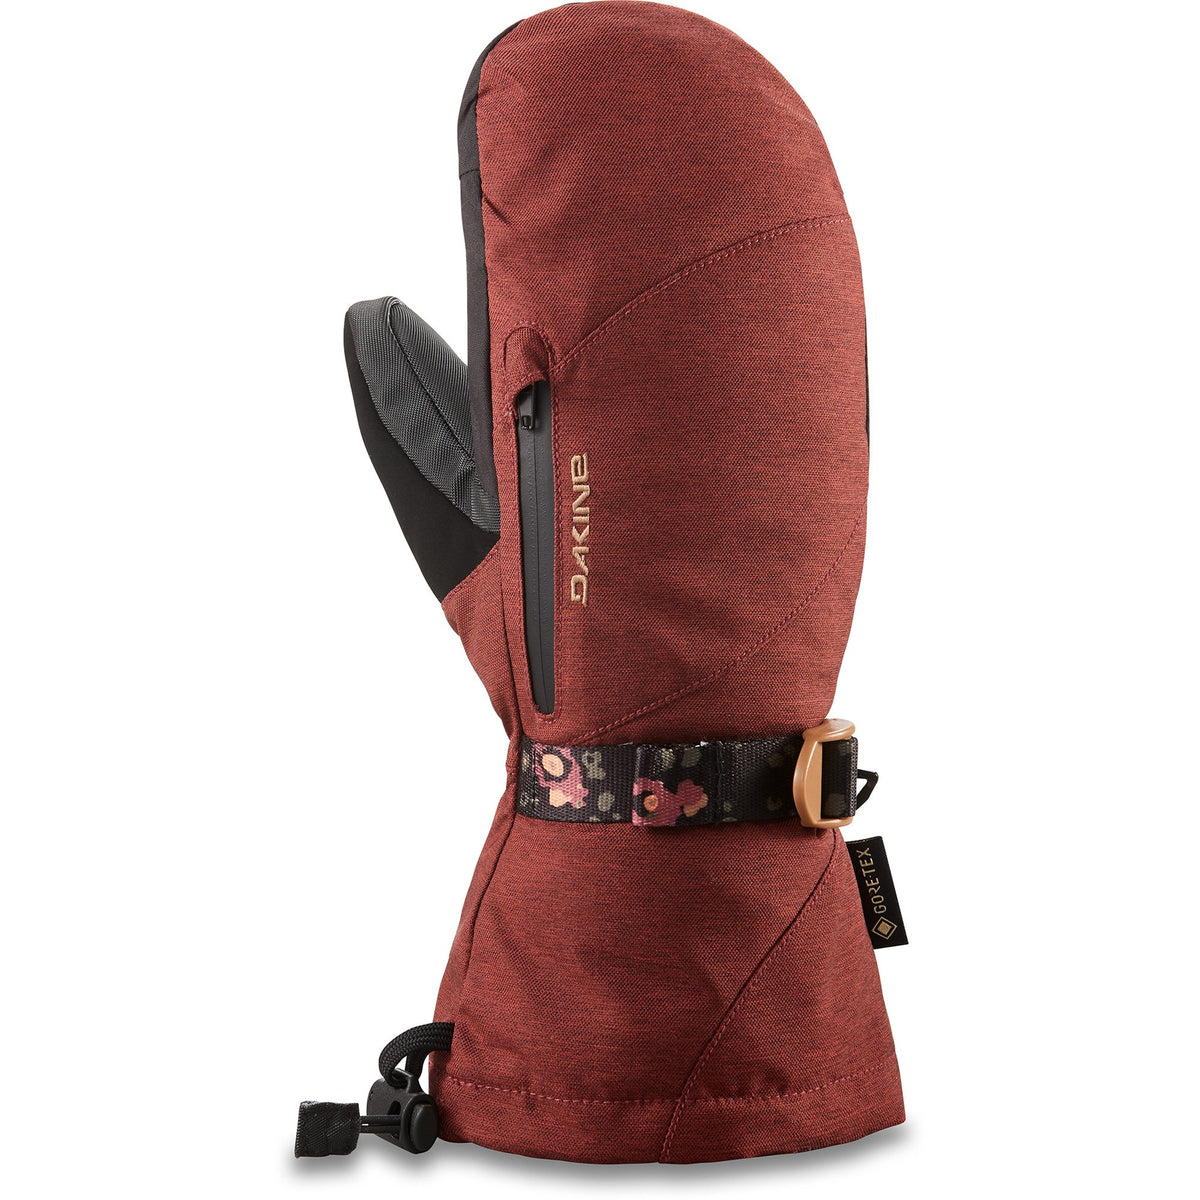 Dakine LEATHER SEQUOIA GORE-TEX  MITT